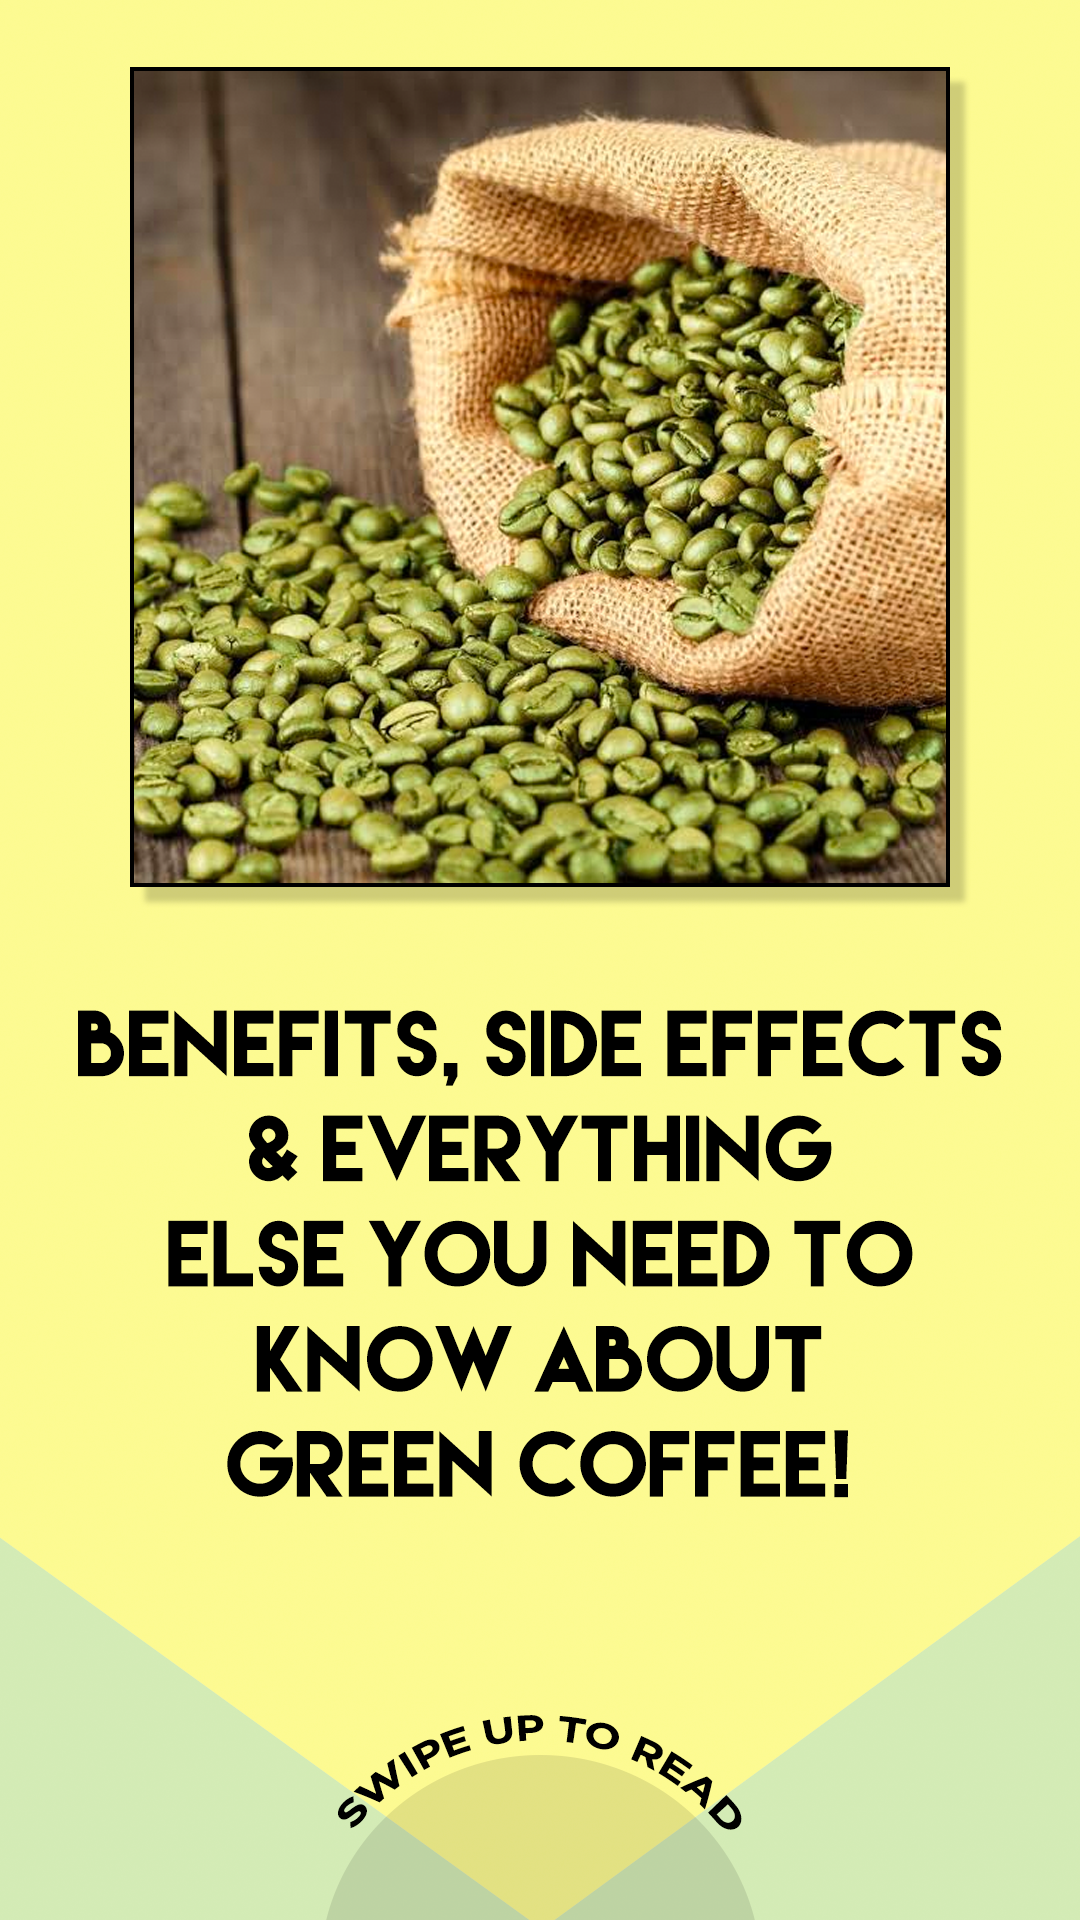 Benefits, Side Effects & Everything Else You Need To Know